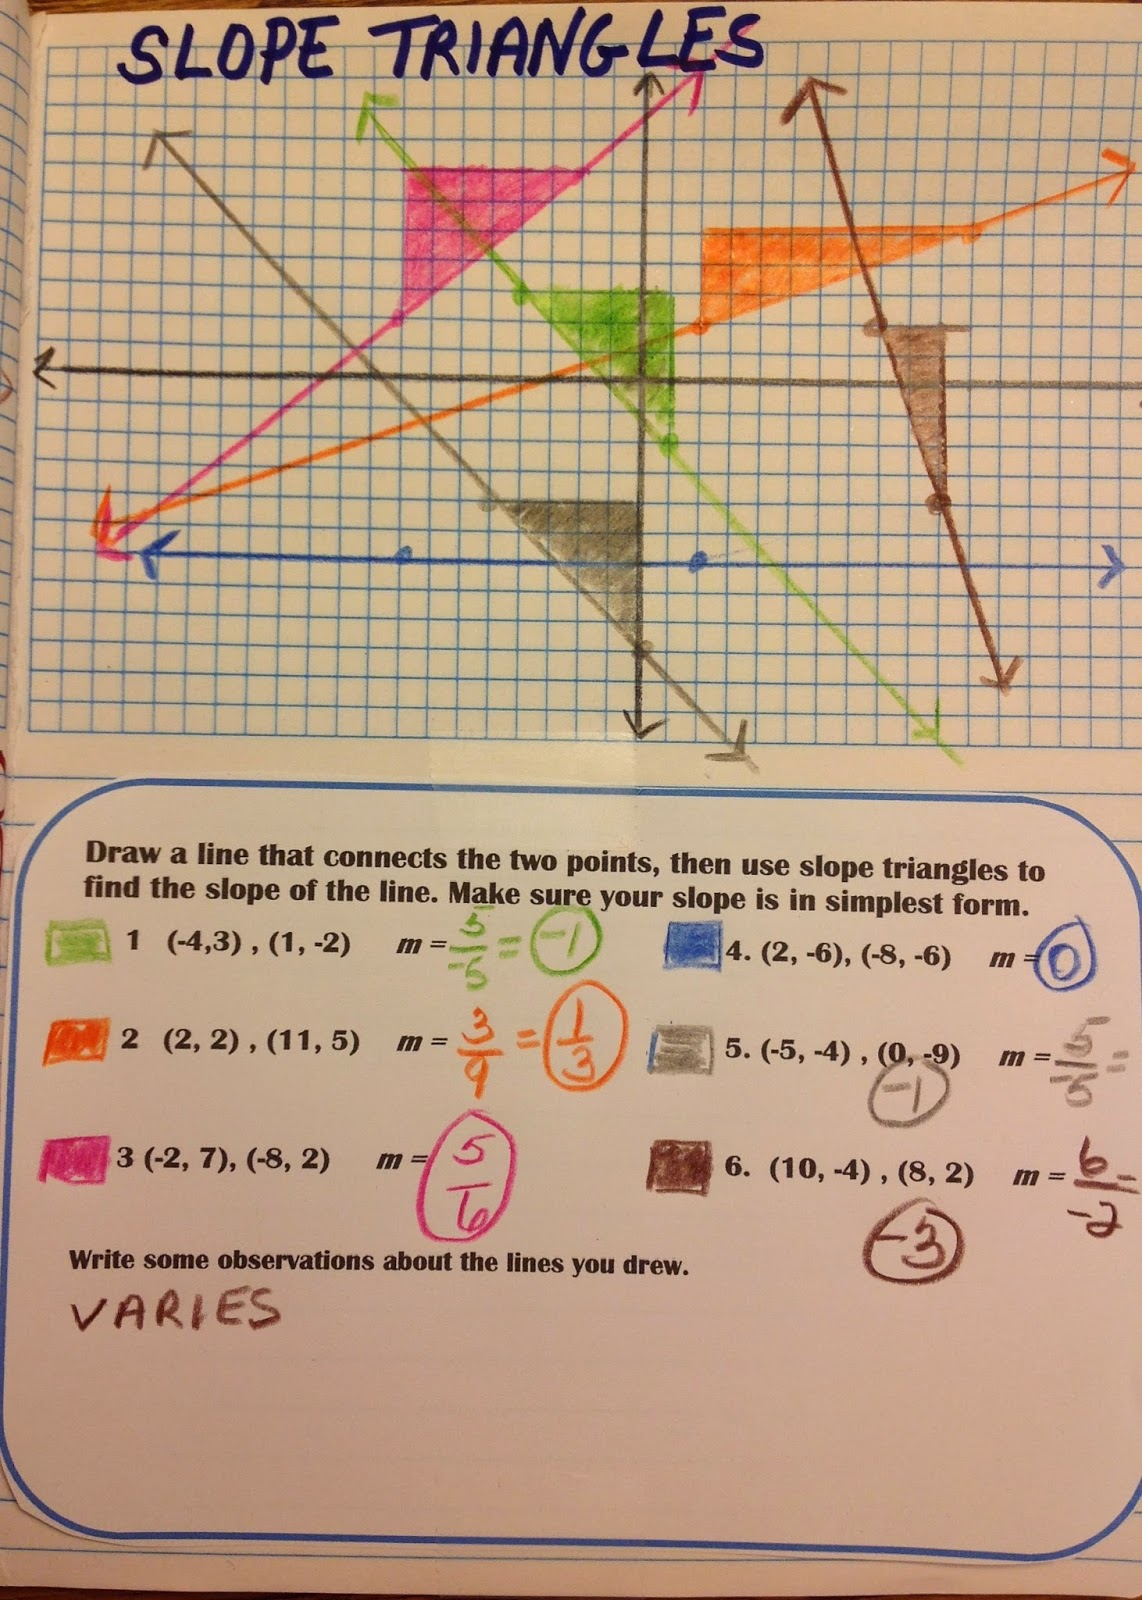 worksheet Slope Triangles Worksheet equation freak slope triangles followed by this activity from illuminations